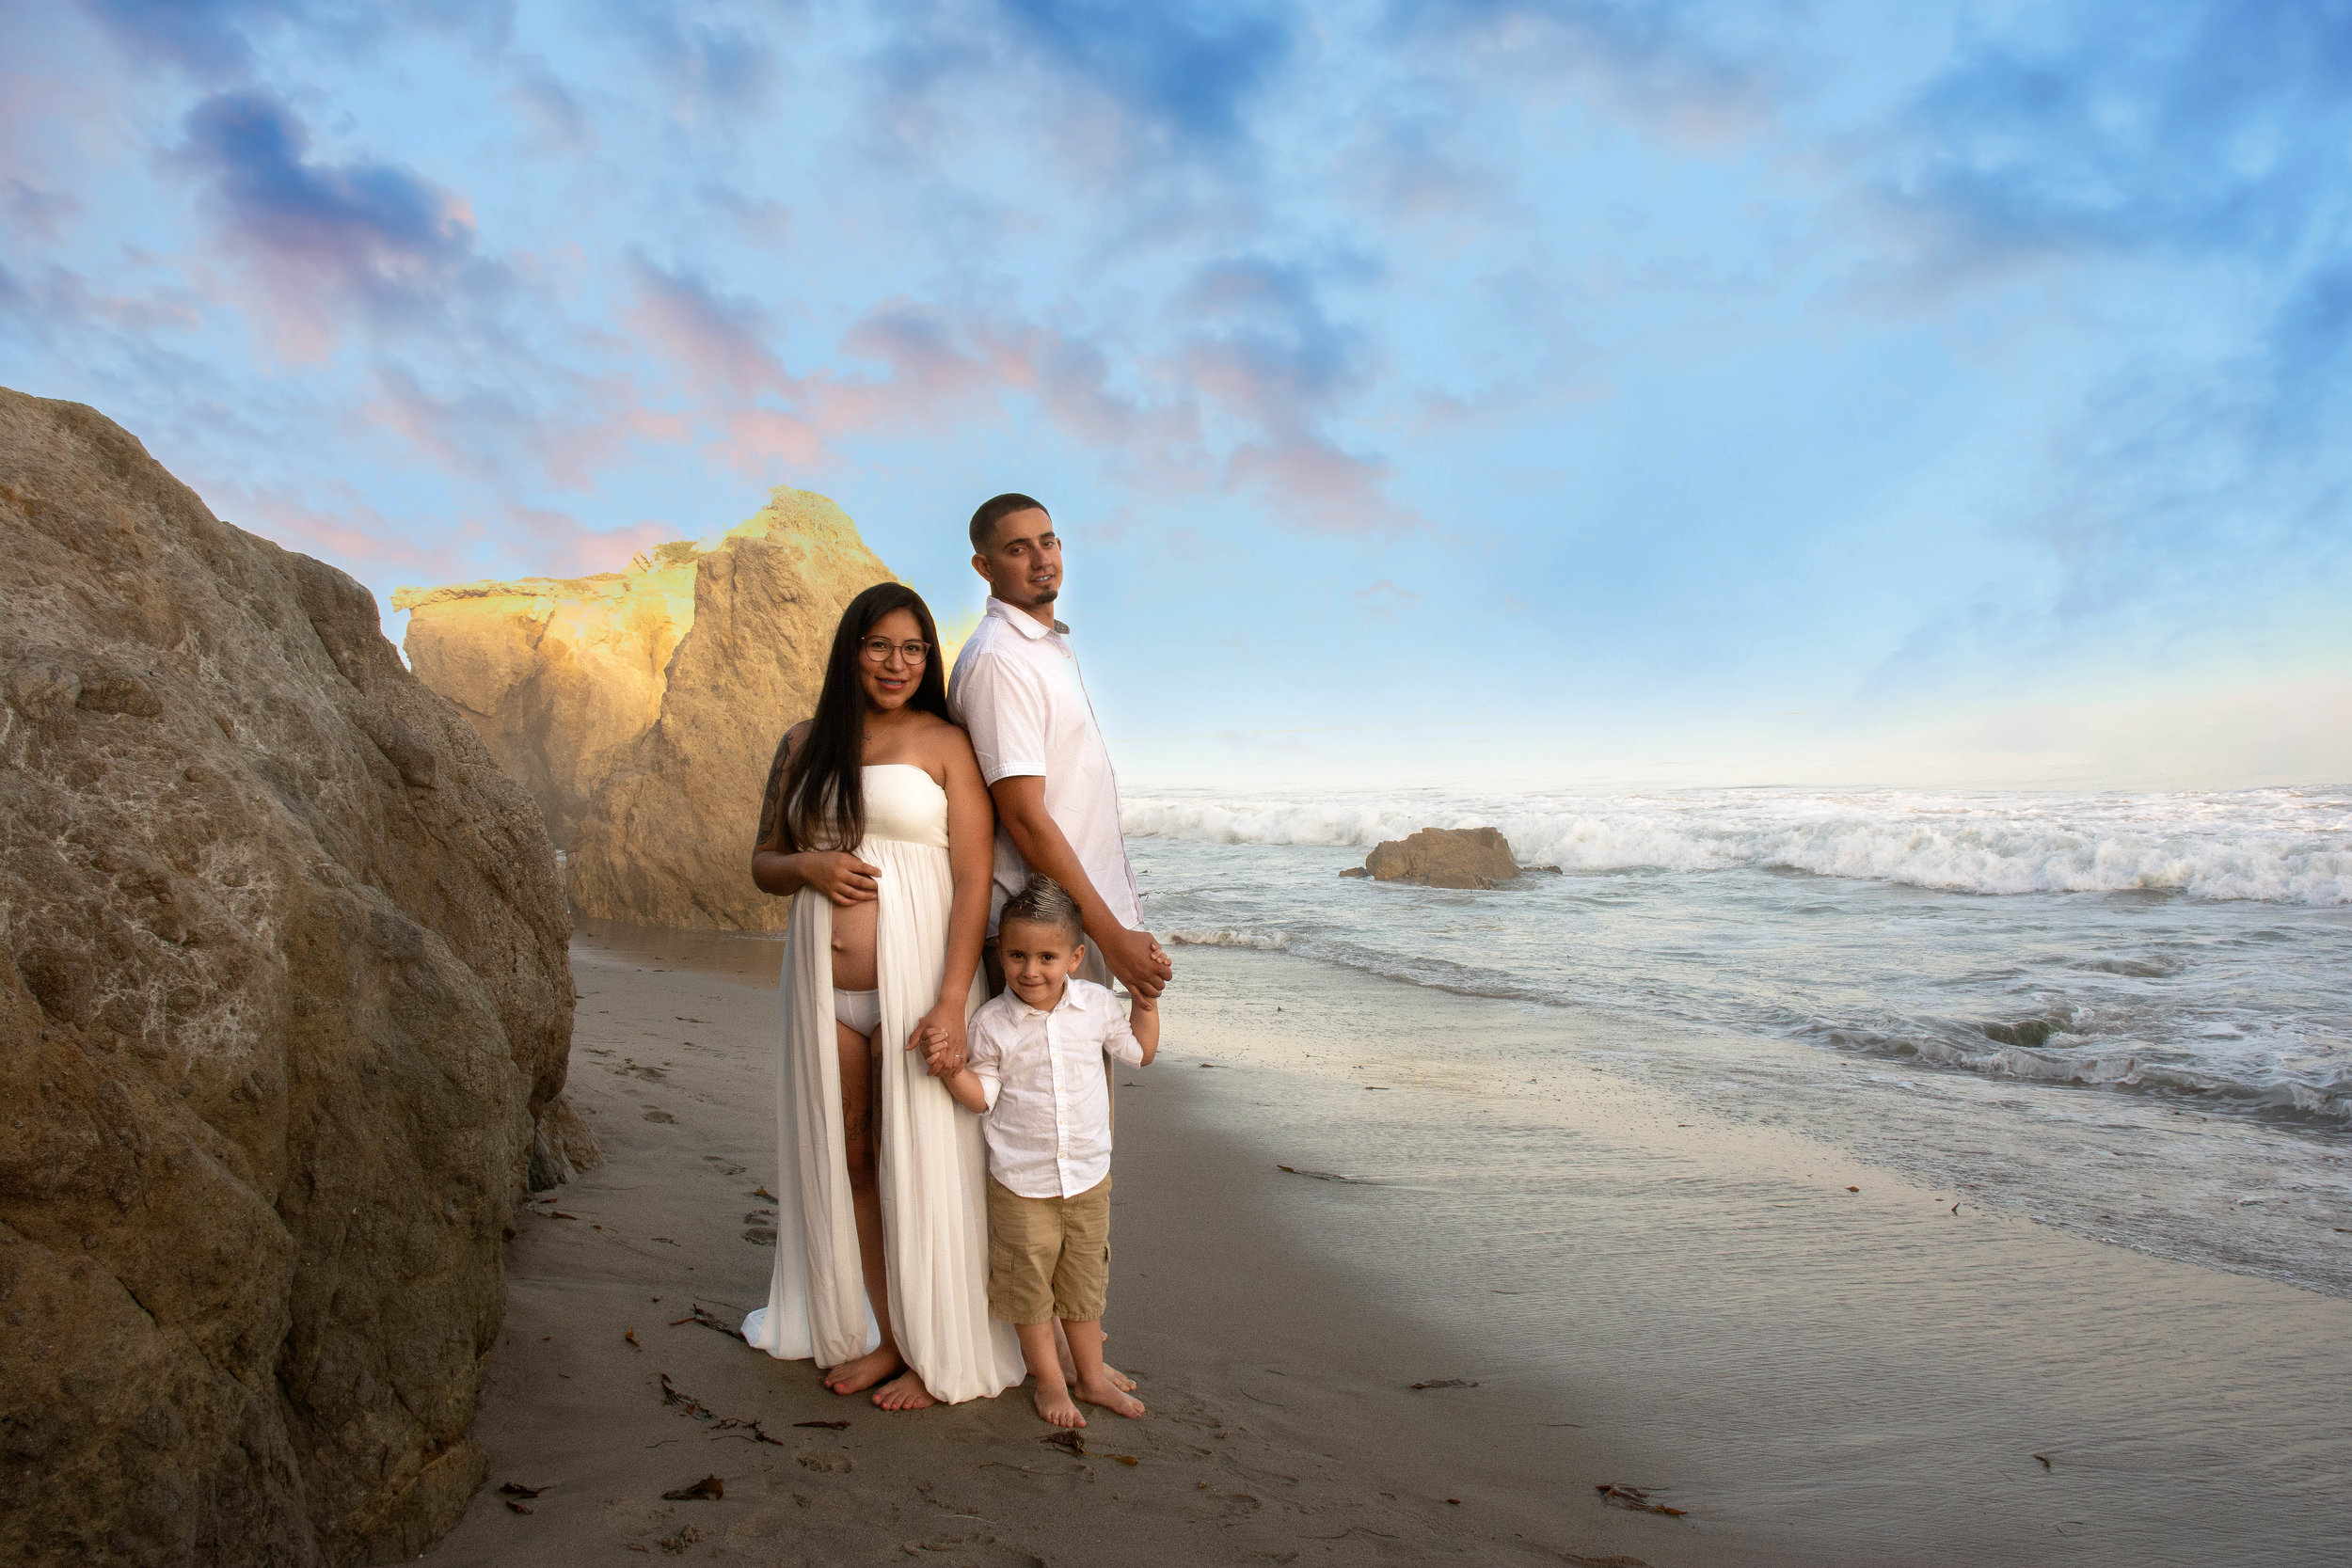 Three Become Four - El Matador Beach, Malibu